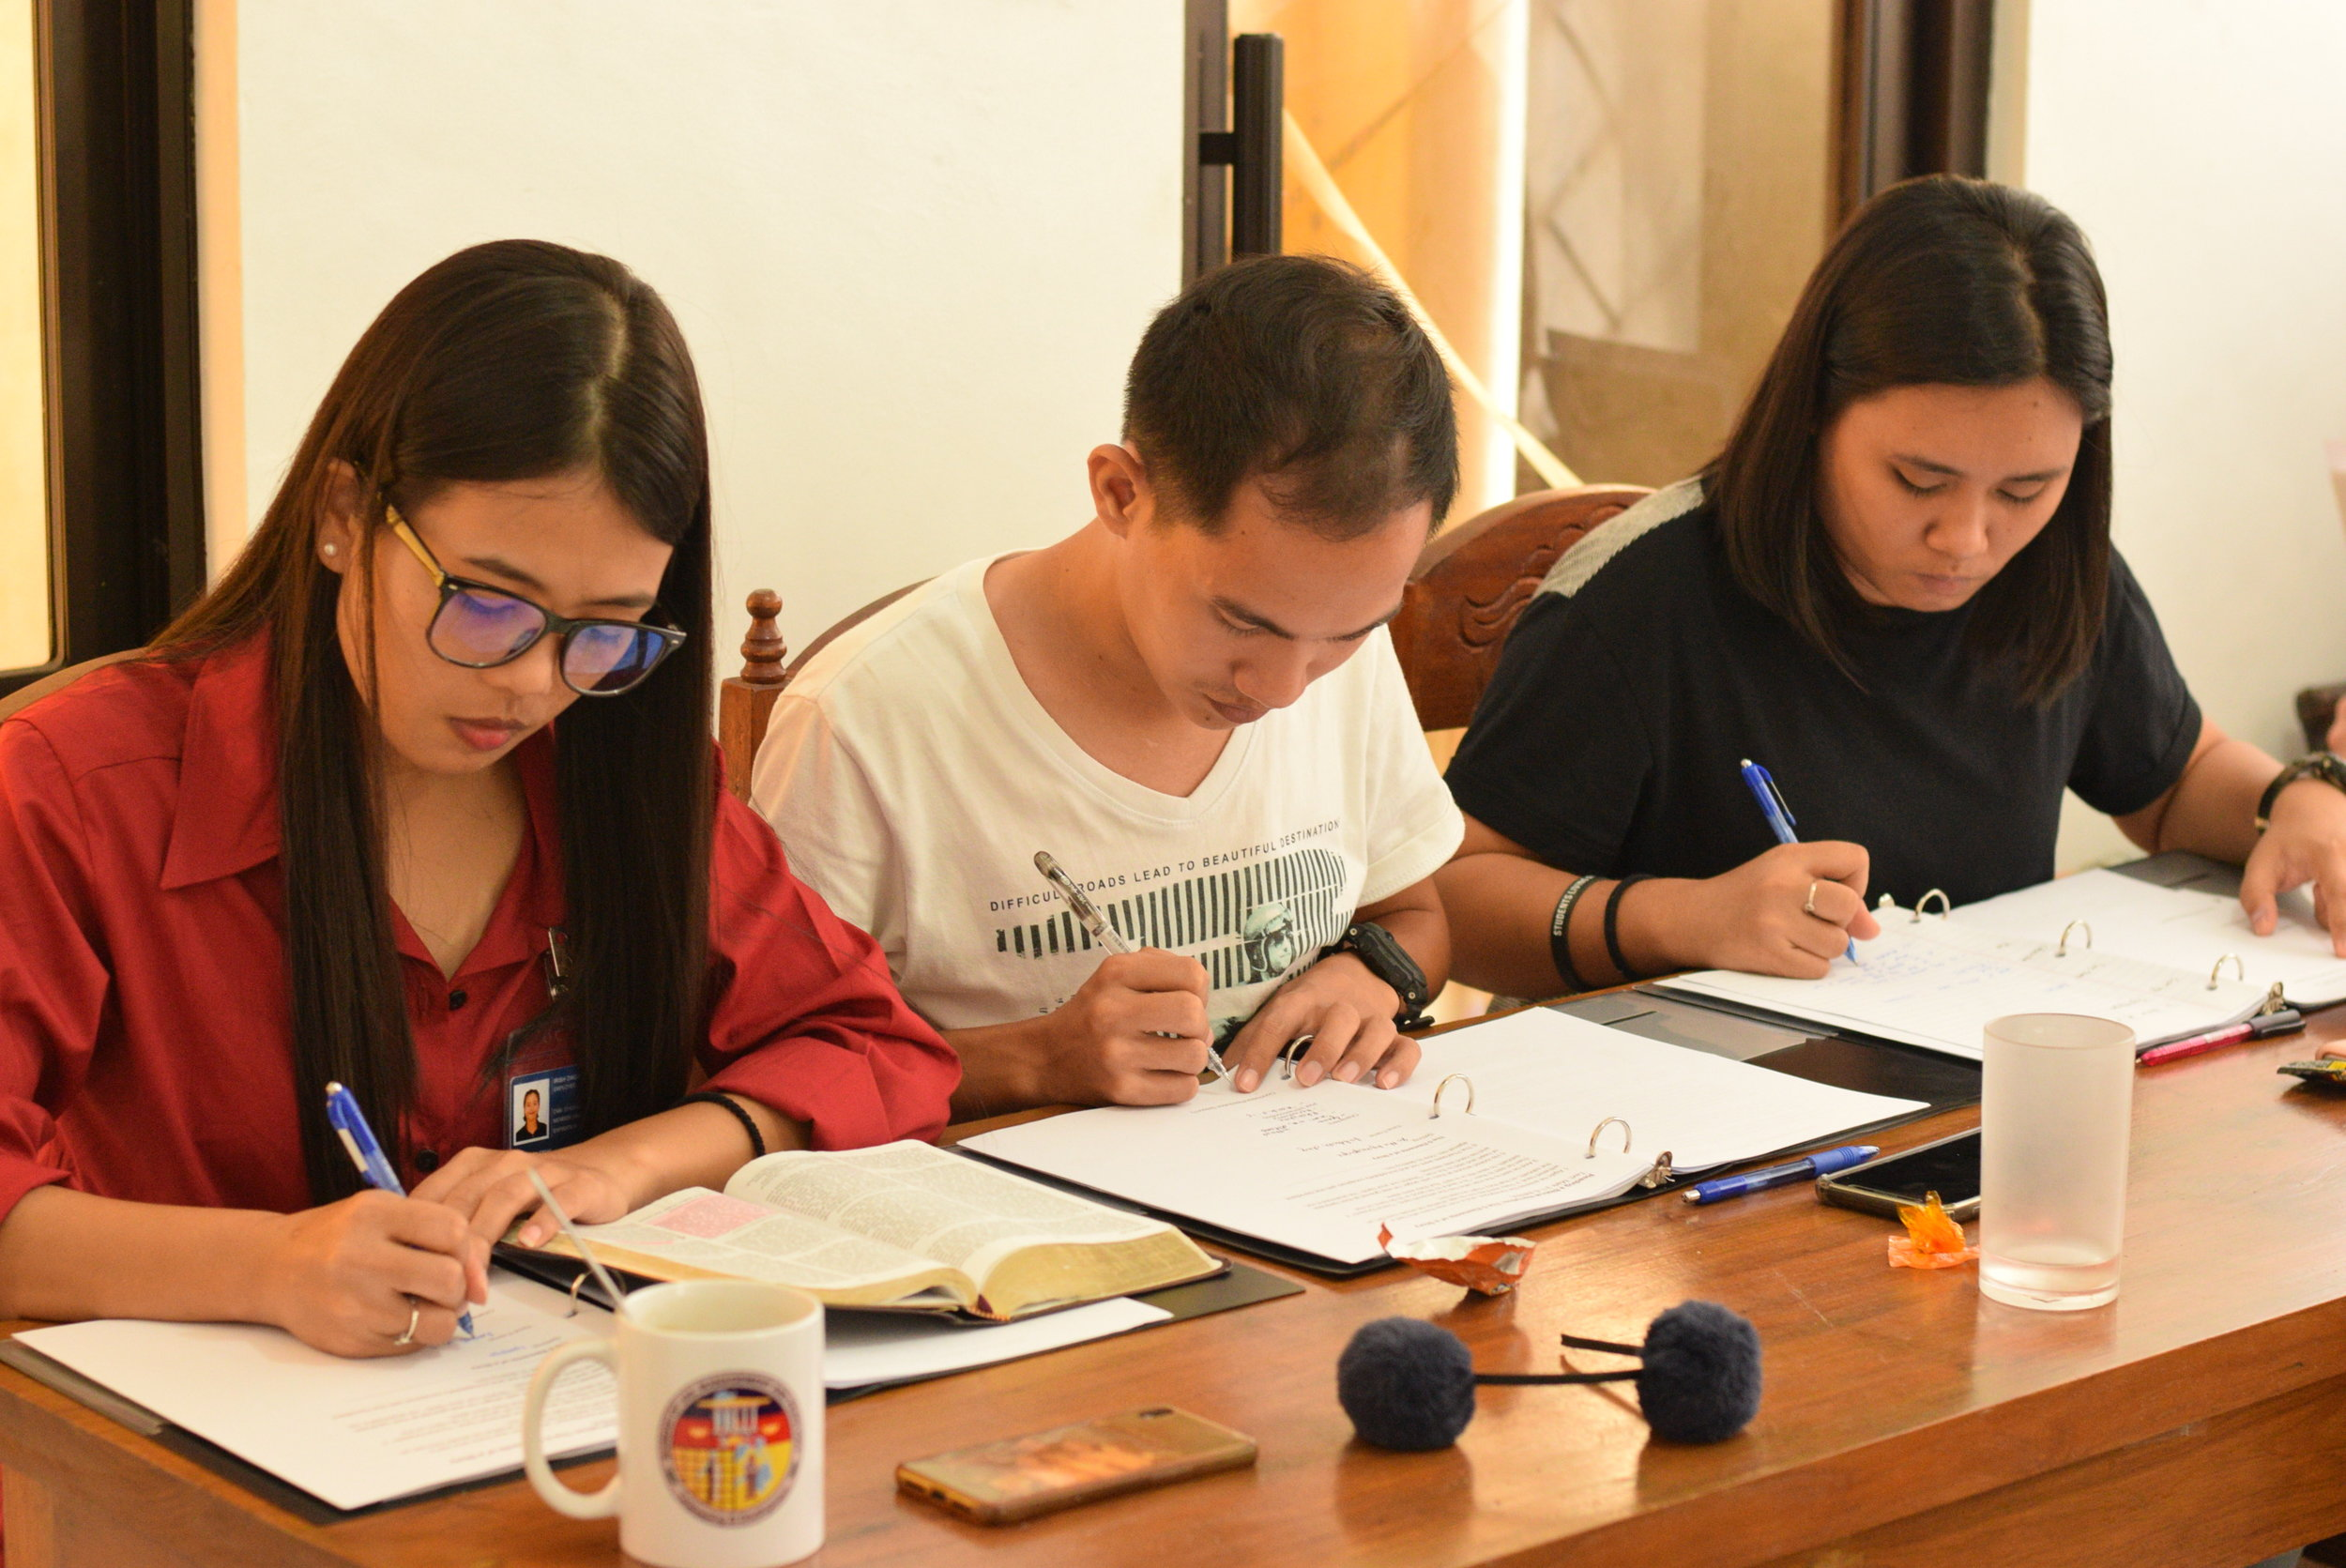 Biblical education is the primary component to the SEA Internship as participants meet weekly for study of scripture, homework, and feedback from course facilitators.